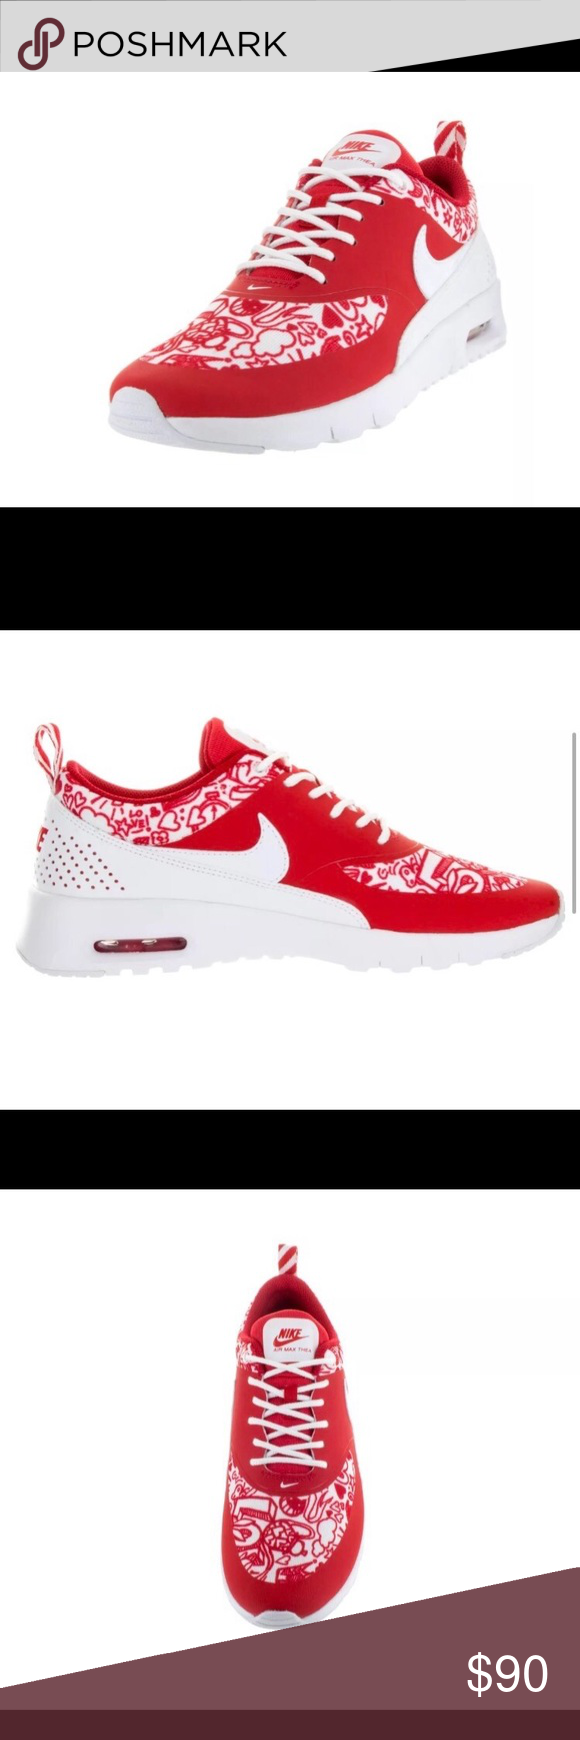 Nike Shoes | Nike Air Max Thea Se University Redwhite